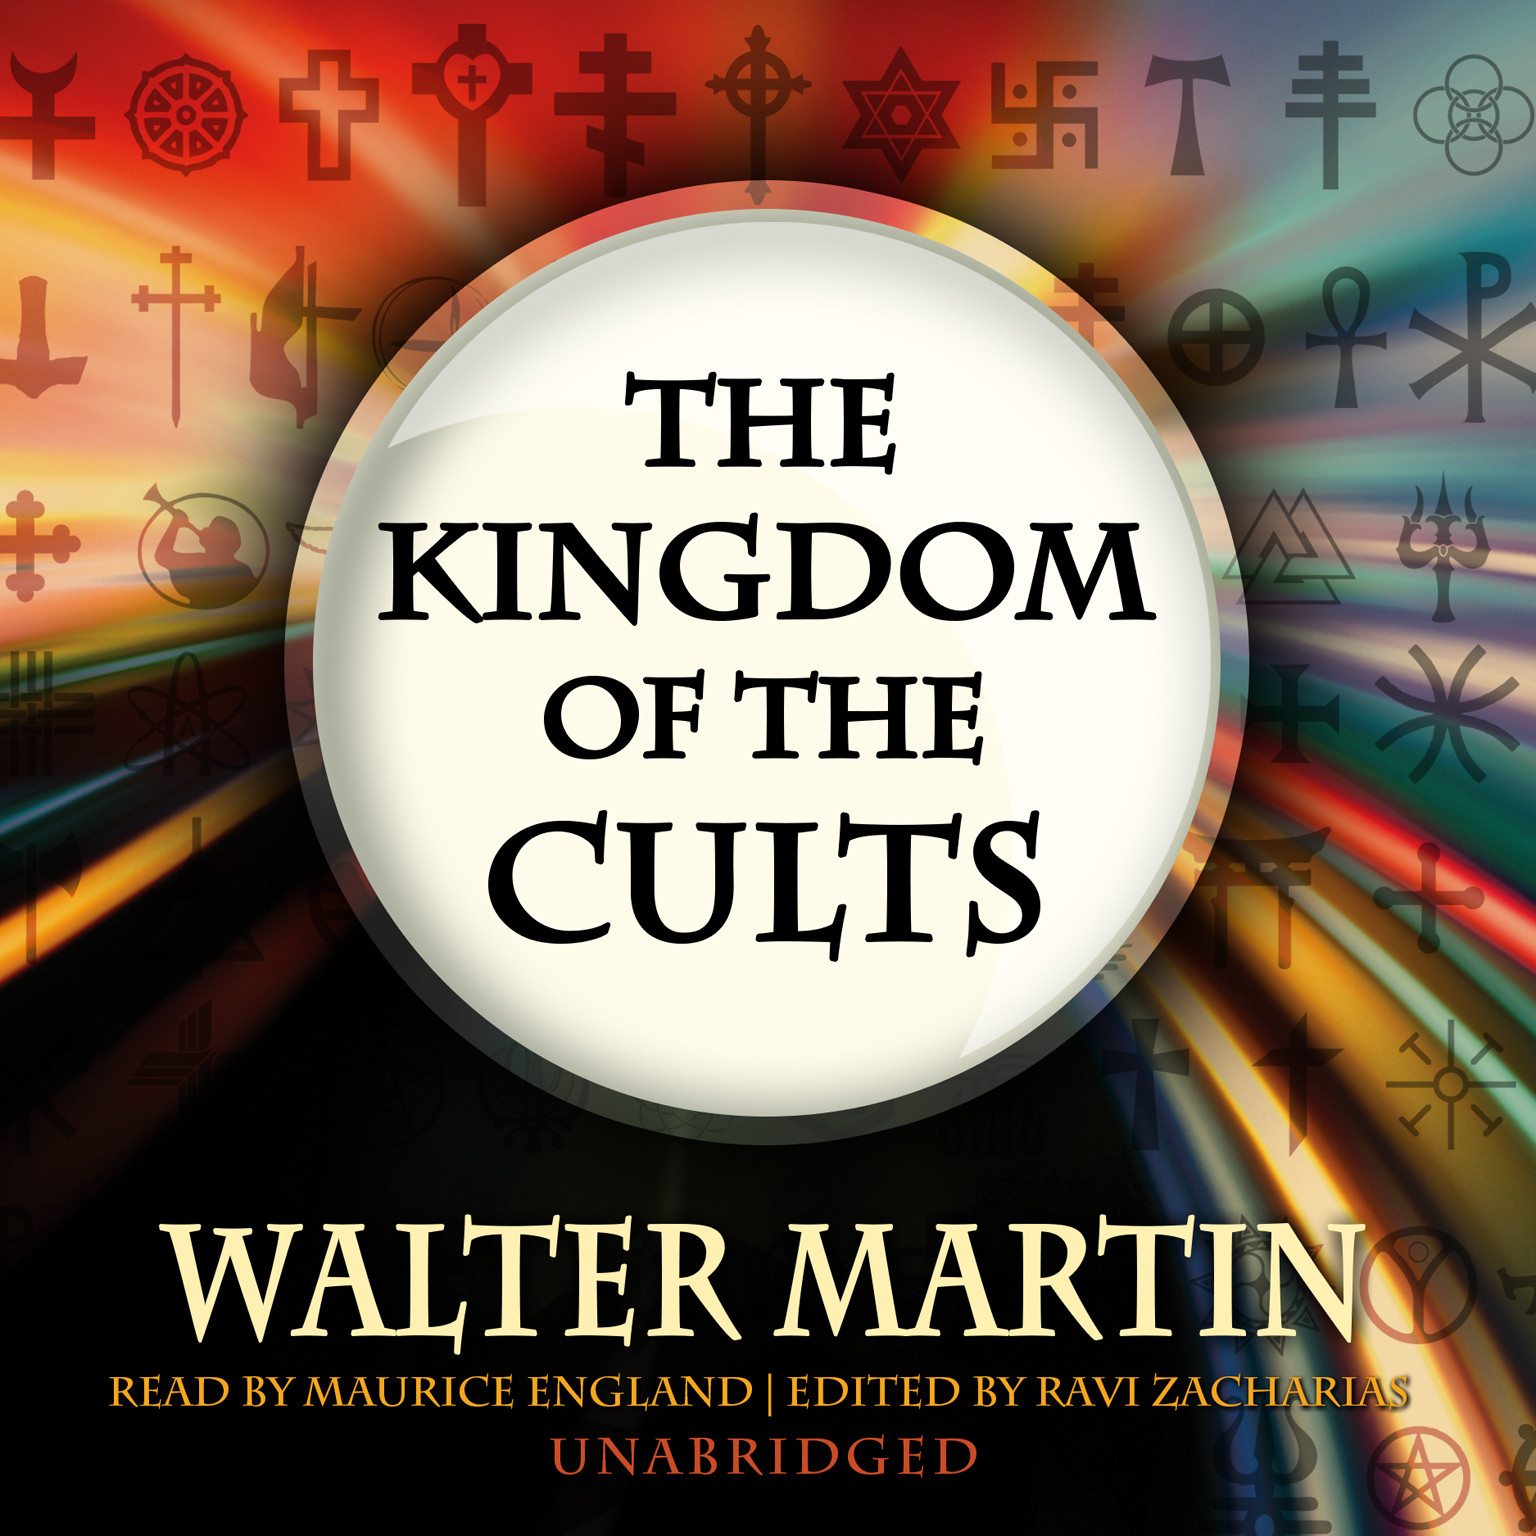 Printable The Kingdom of the Cults Audiobook Cover Art